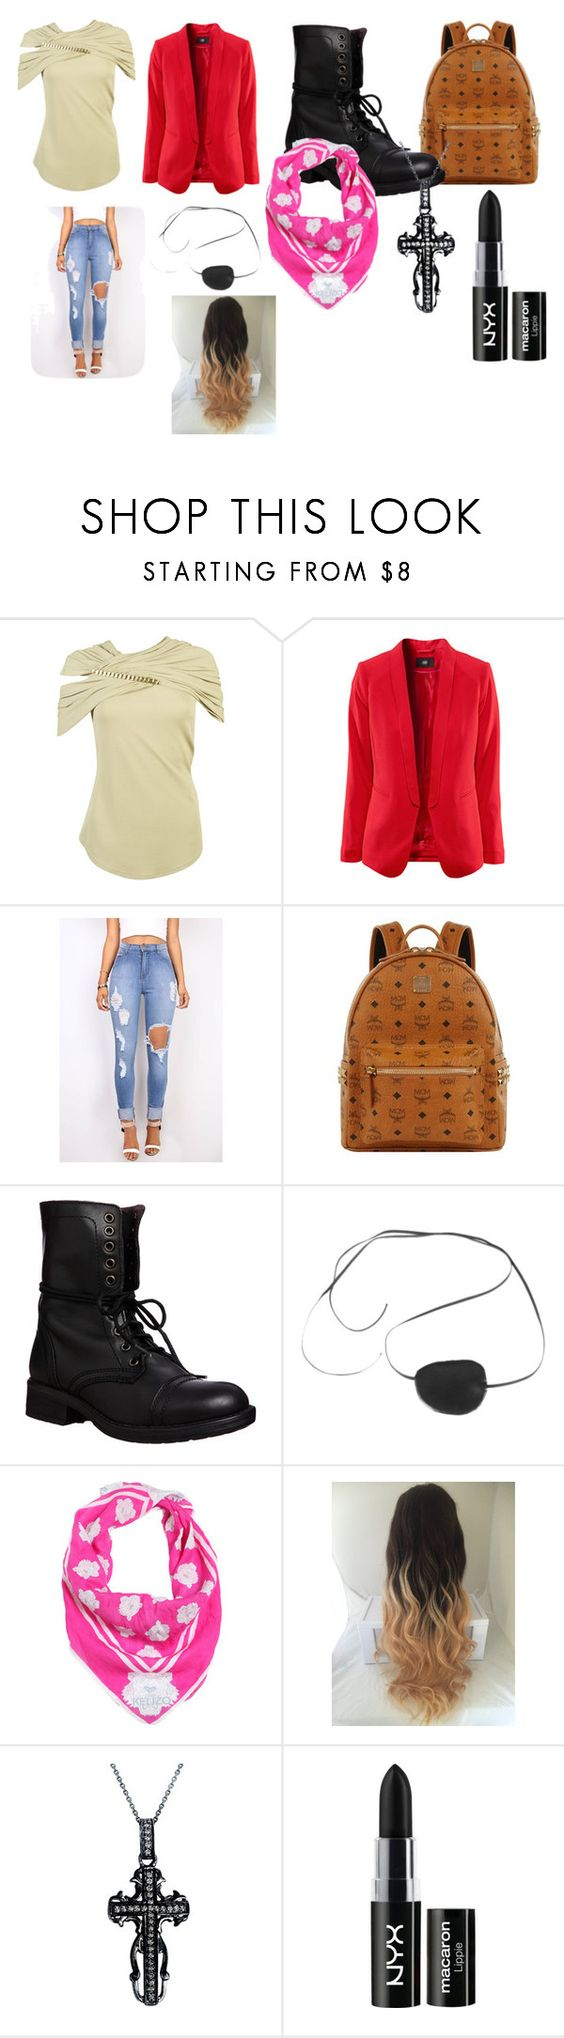 """""""Your Pirate Outfit"""" by lizzie12304 on Polyvore featuring Givenchy, MCM, Steve Madden, Ciel, Kenzo, Mystic Light, NYX, men's fashion and menswear"""